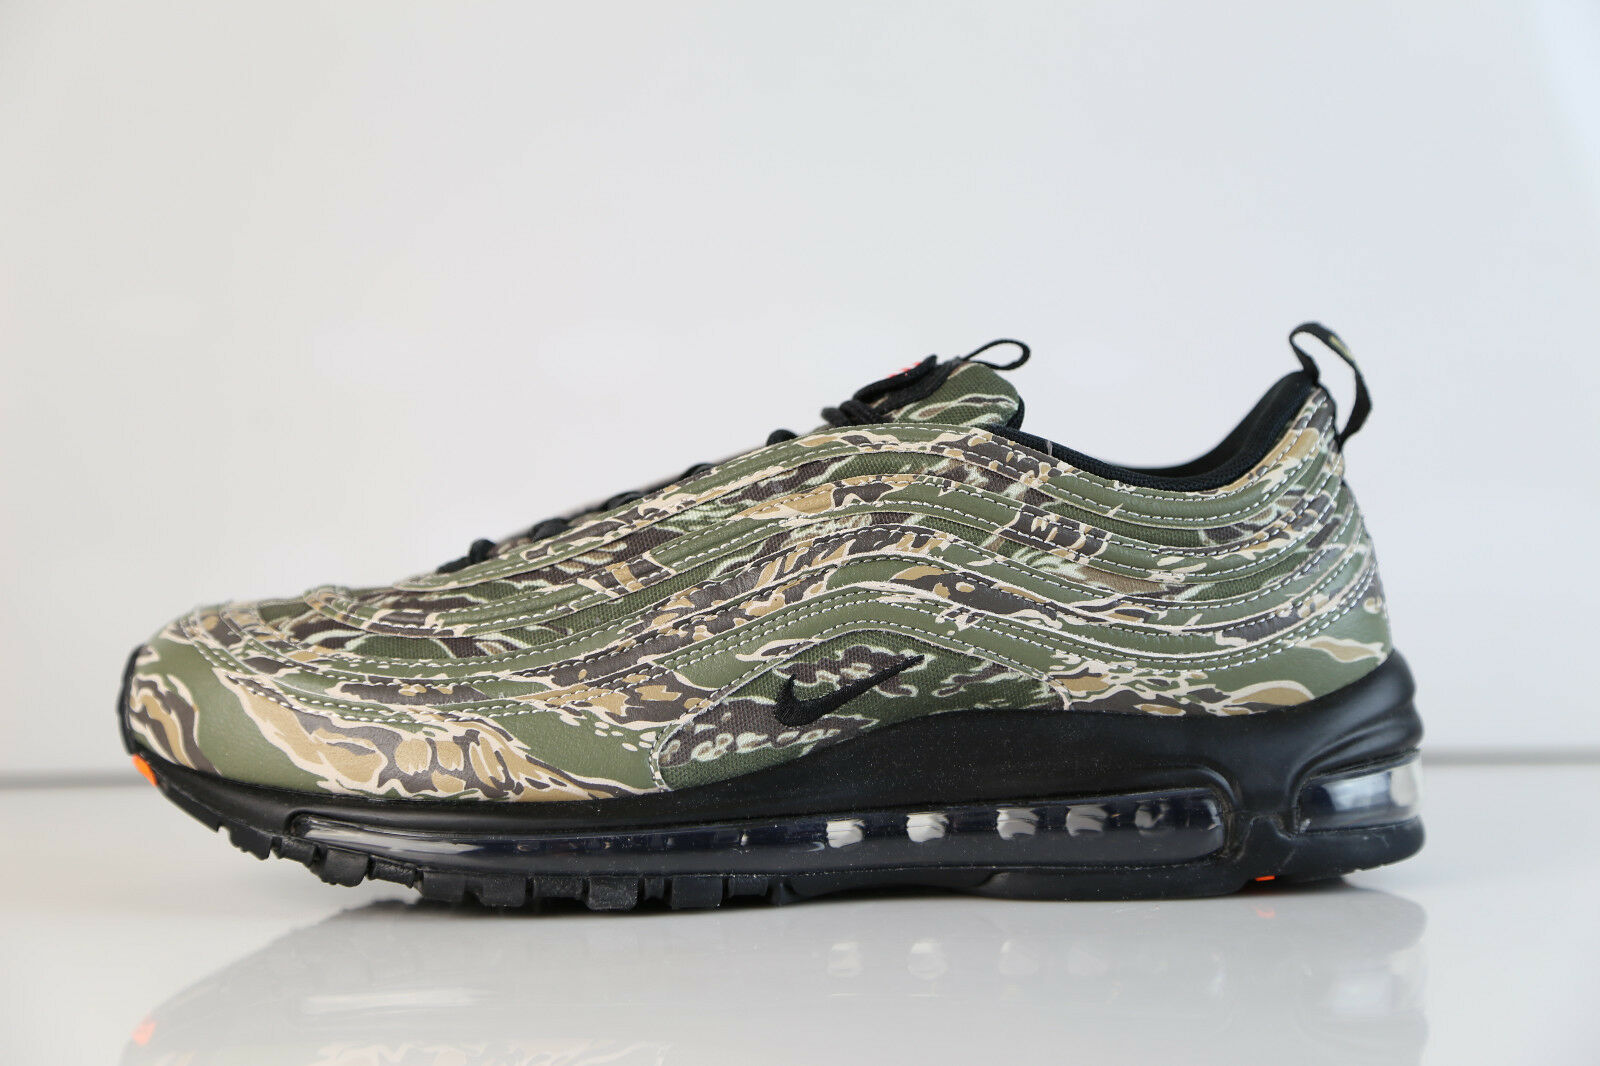 Nike Air Max 97 Premium QS Camo USA Olive International Air AJ2614-205 7.5-13 1